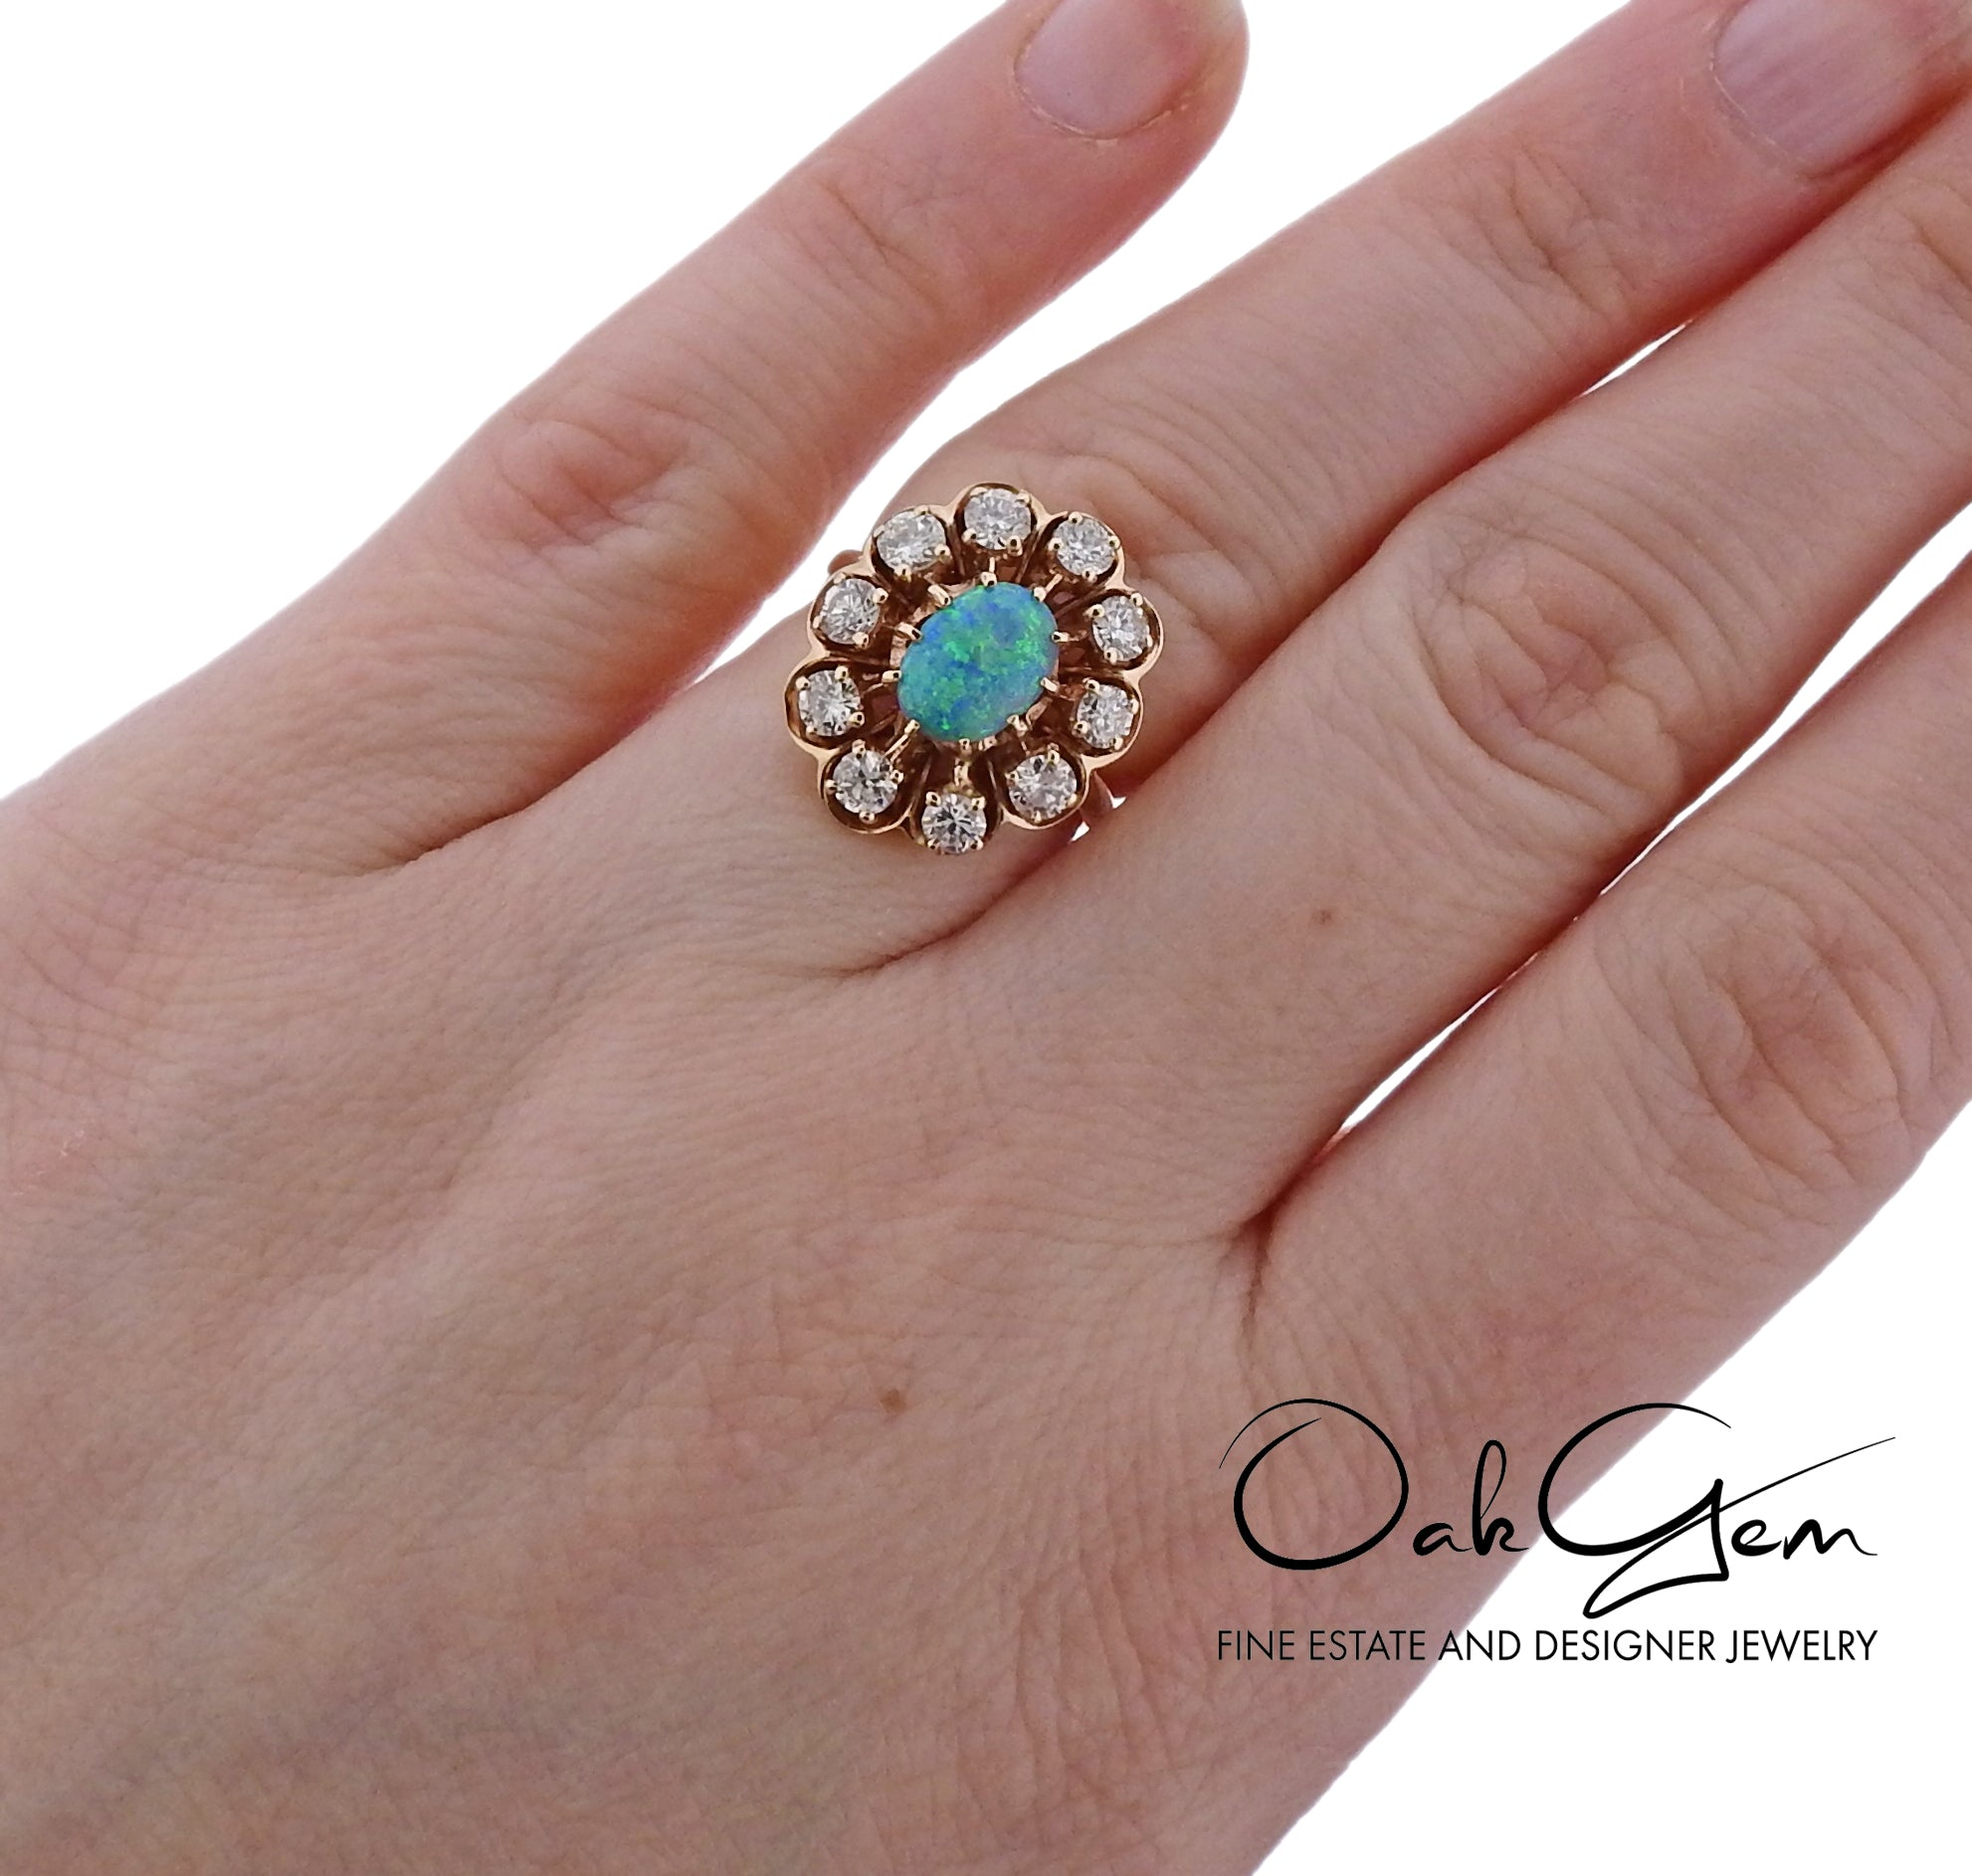 14k Gold Diamond Opal Cocktail Ring